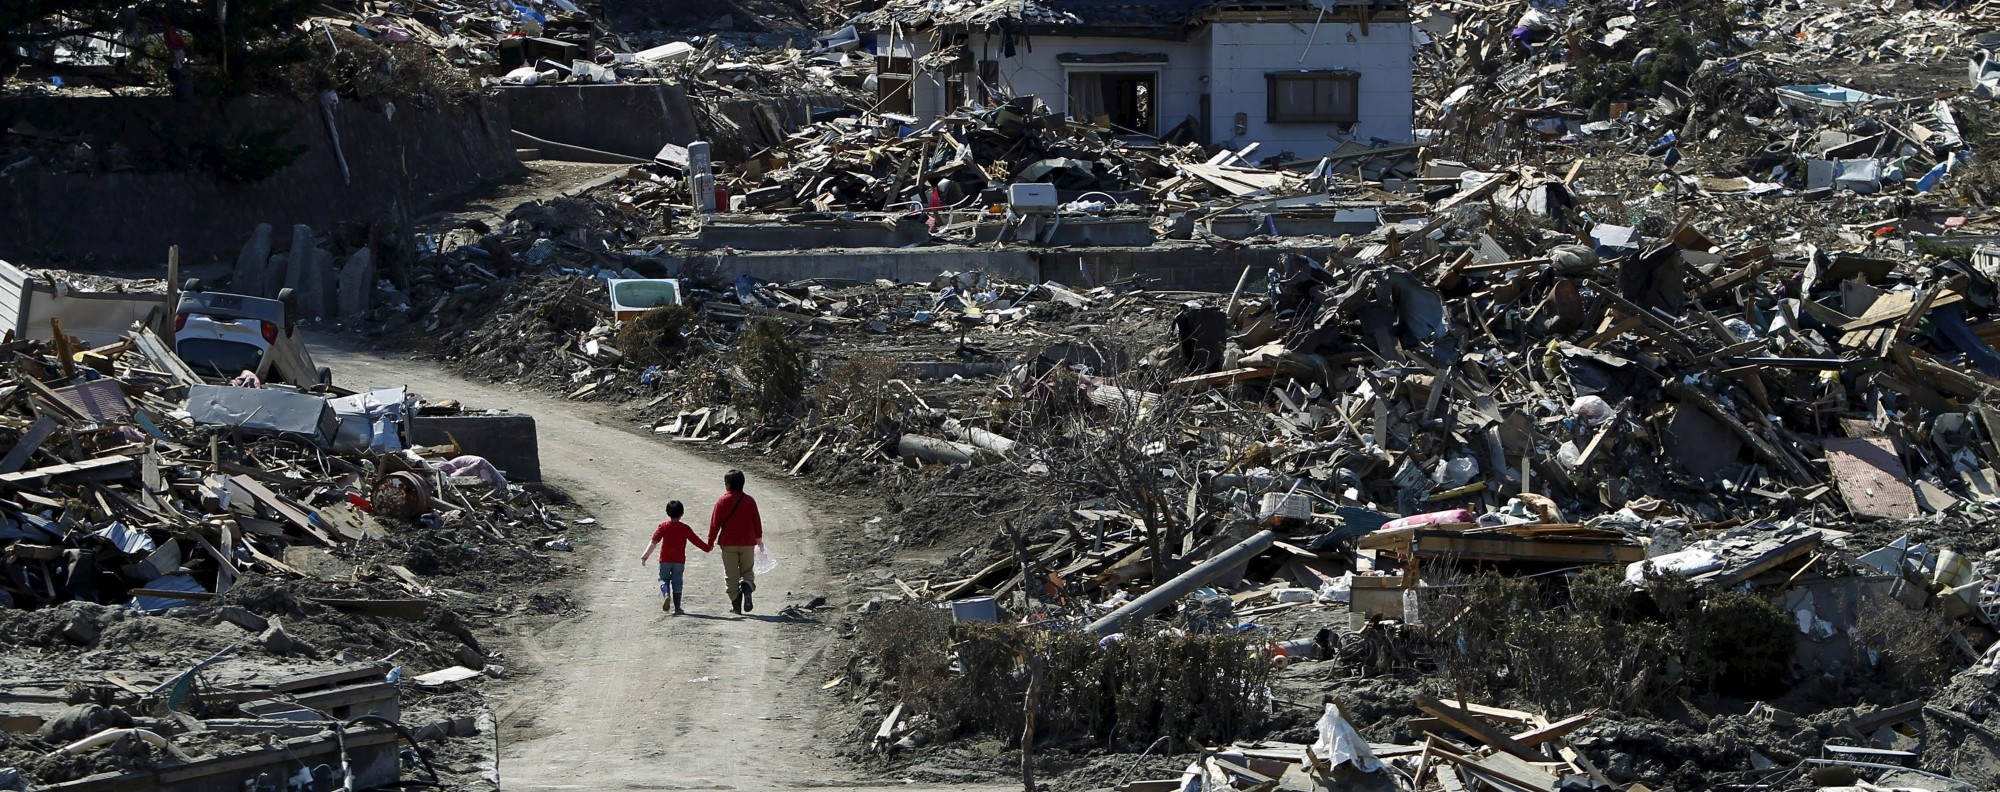 Miyako, in Iwate prefecture, Japan after the 2011 earthquake. Picture: Reuters